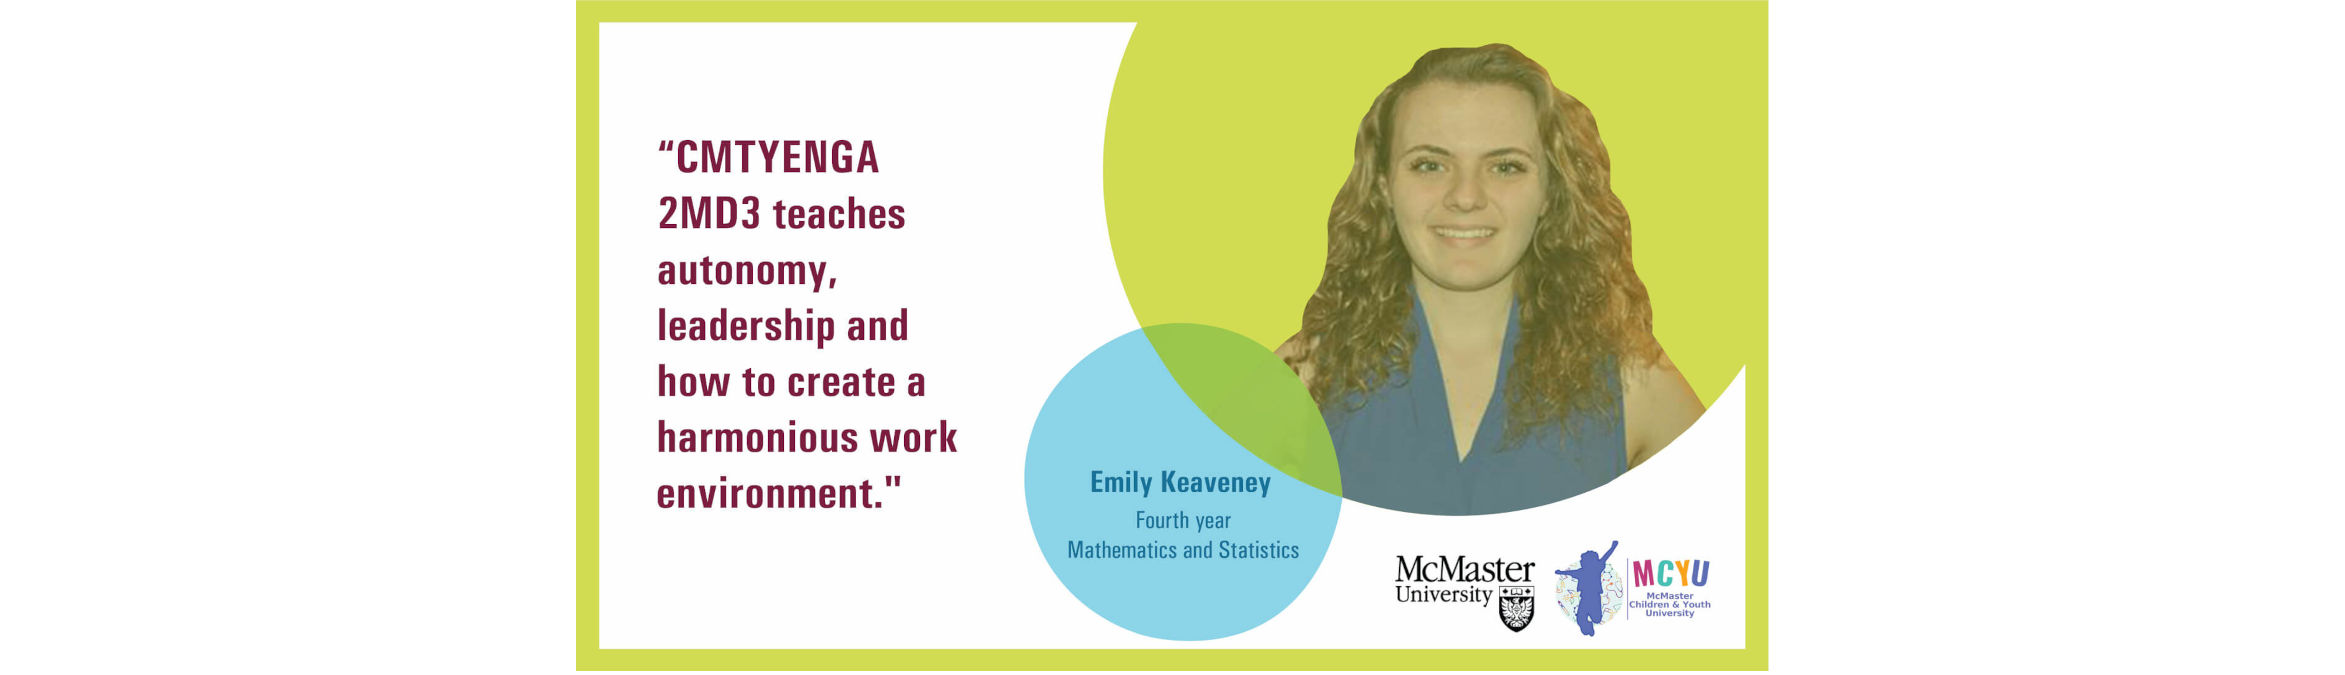 Testimonial by Emily Keaveney (Fourth year, Mathematics and Statistics): CMTYENGA 2MD3 teaches autonomy, leadership and how to create a harmonious work environment.